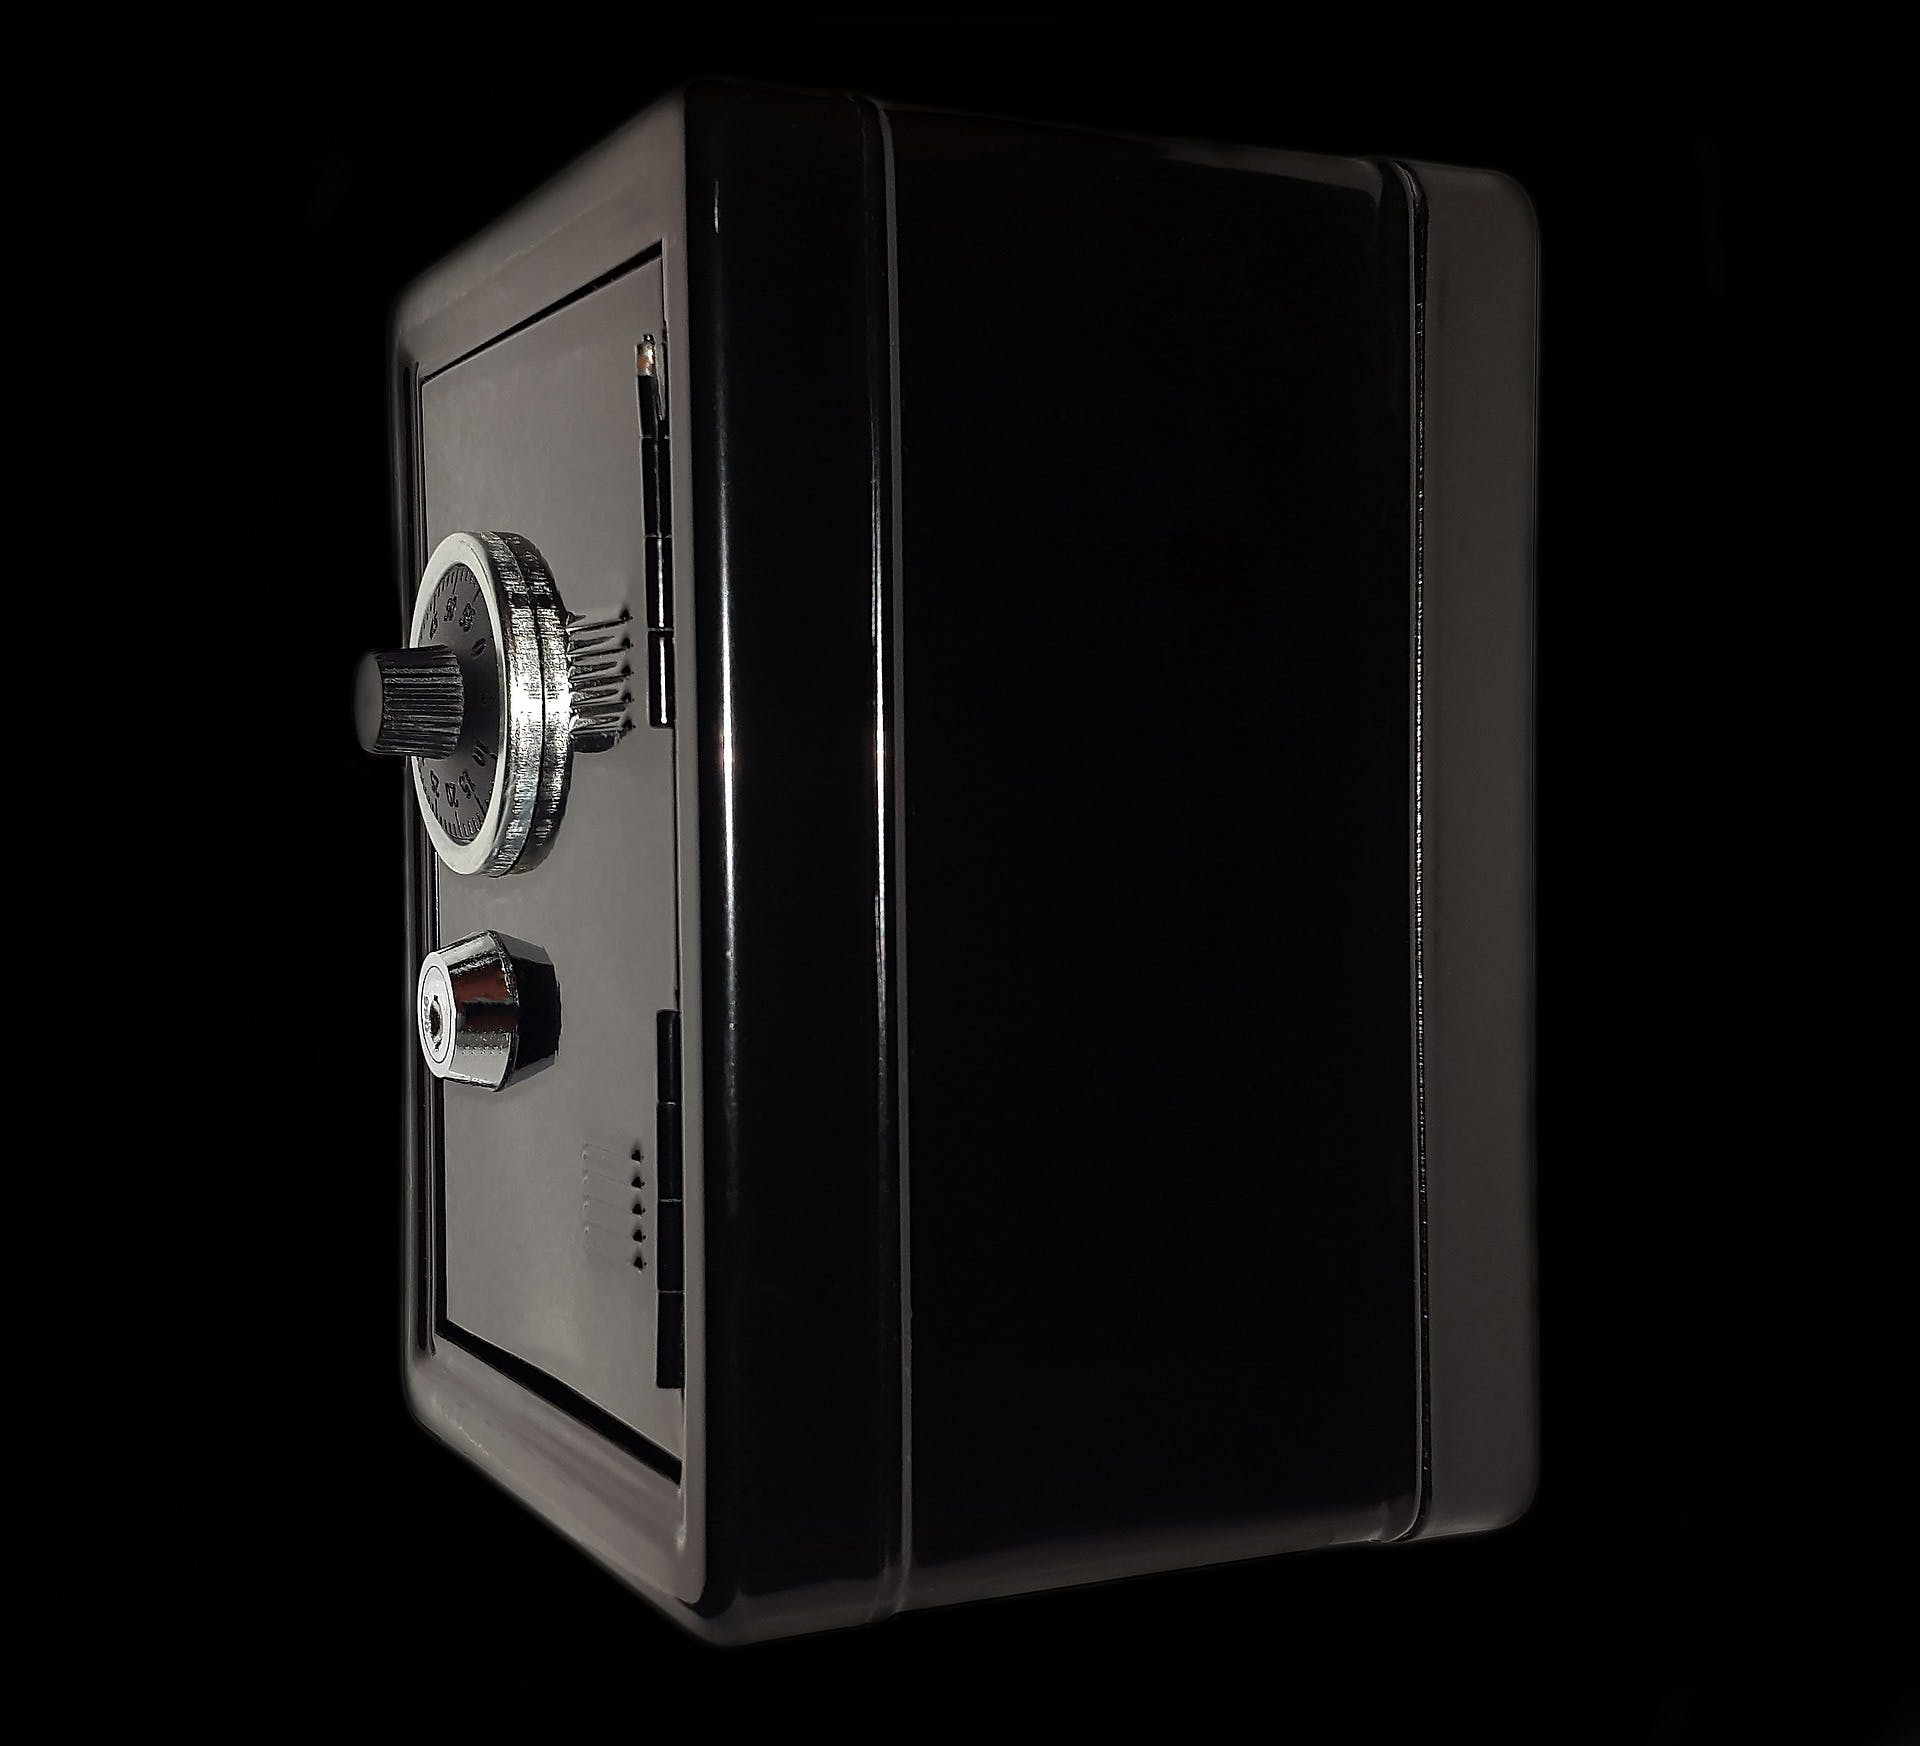 Precious Metals, Gems, and Jewelry: What to Look For In a Jewelry Safe